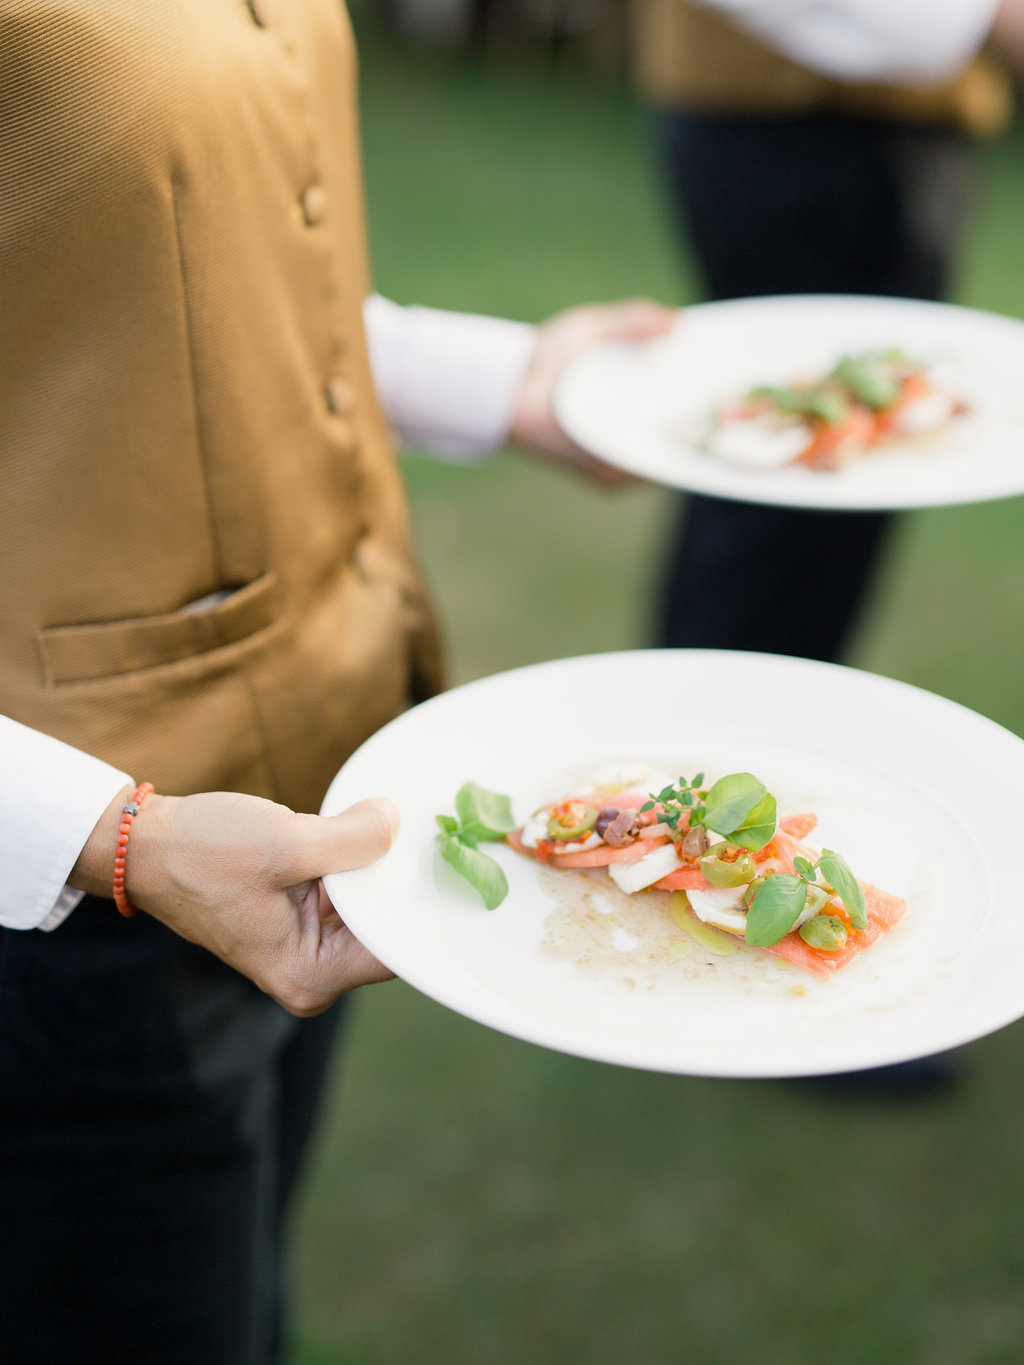 paige zack wedding food on white places